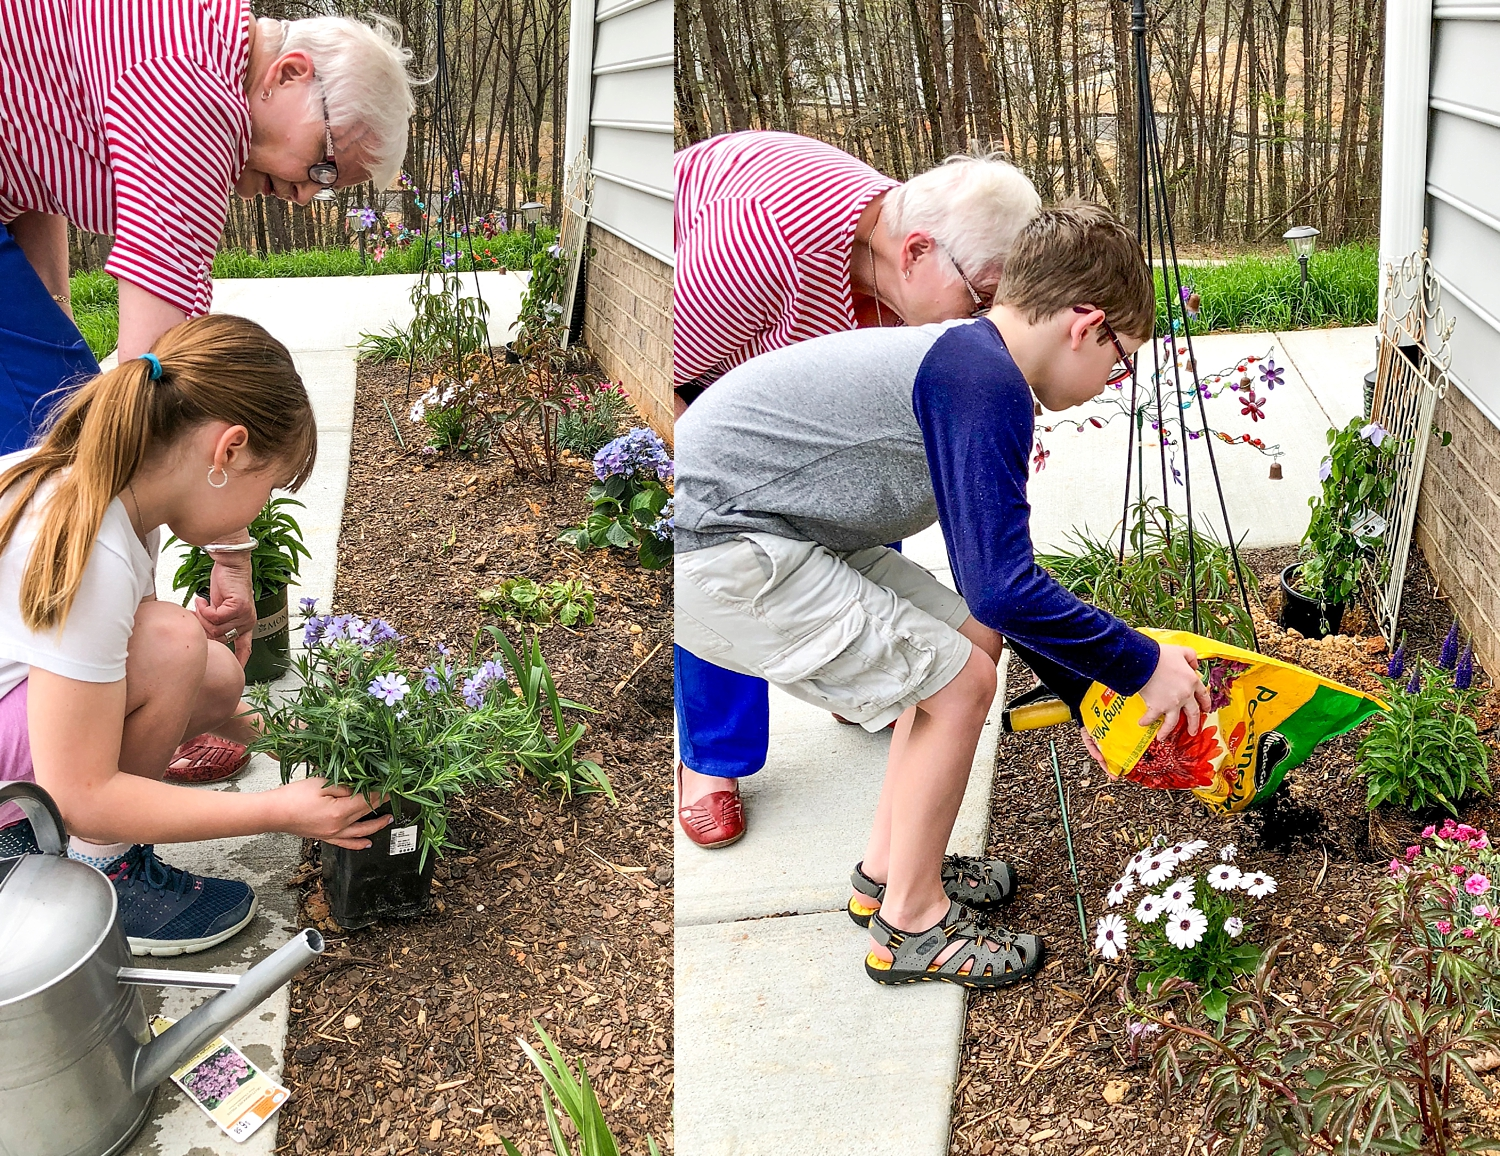 Exposing your kids to older generations is another important way to unschool kids. There is so much wisdom and advice that can be gained from spending time with grandparents, great aunts or uncles, or family friends. Exposing kids to different people is a goal of our unschooling our children.